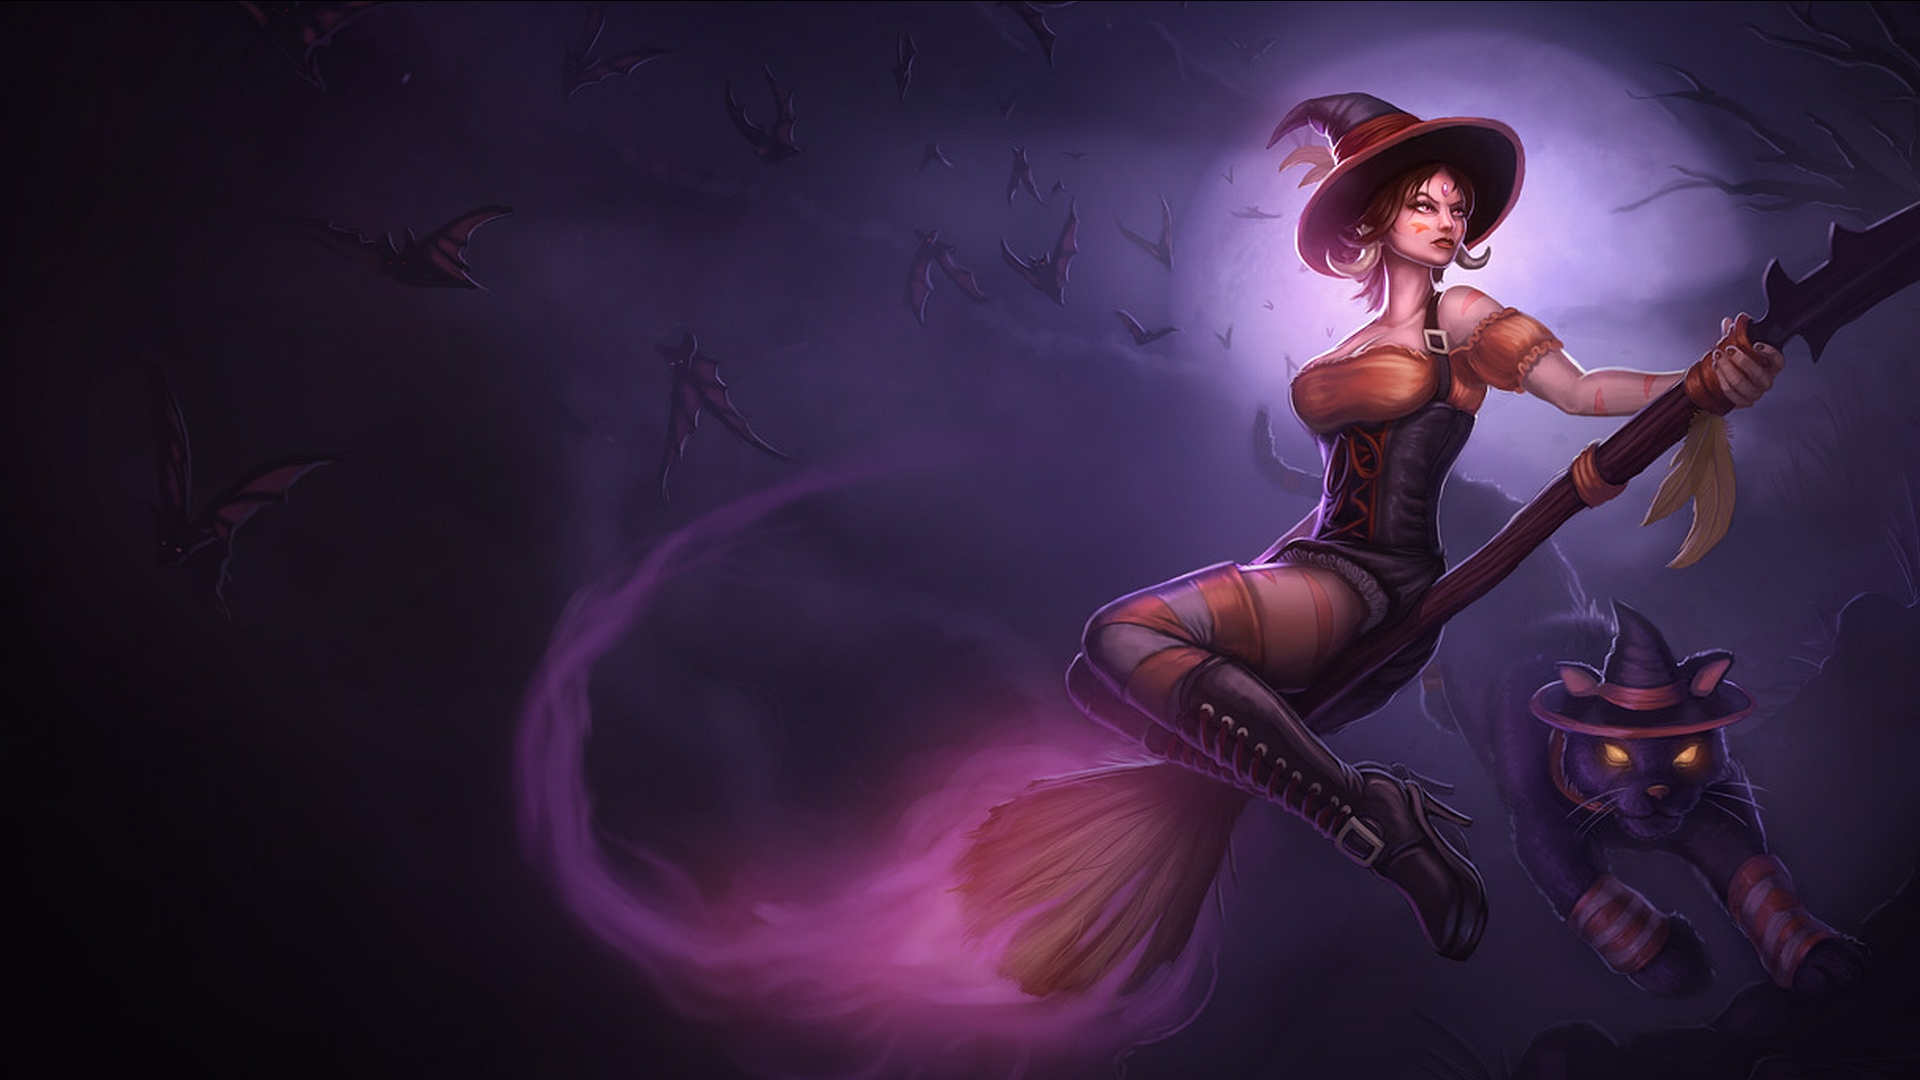 League of Legends fantasy art dark horror witch wallpaper 1920x1080 1920x1080